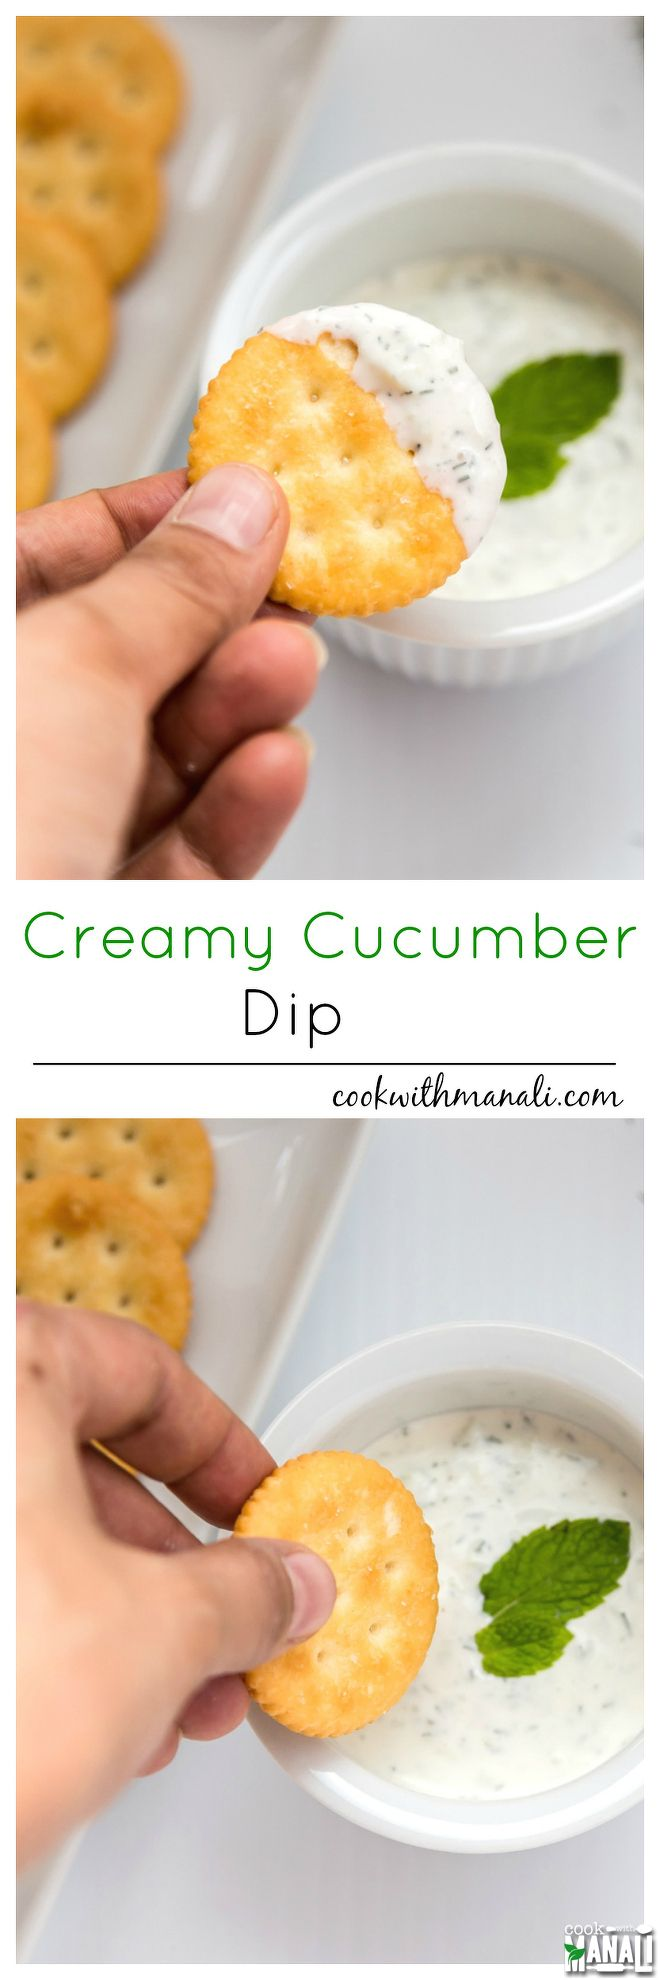 Creamy Cucumber Dip is perfect to dip pretzels, chips, crackers and more. It's also fantastic with wraps, quesadillas and burritos! Find the recipe on www.cookwithmanali.com